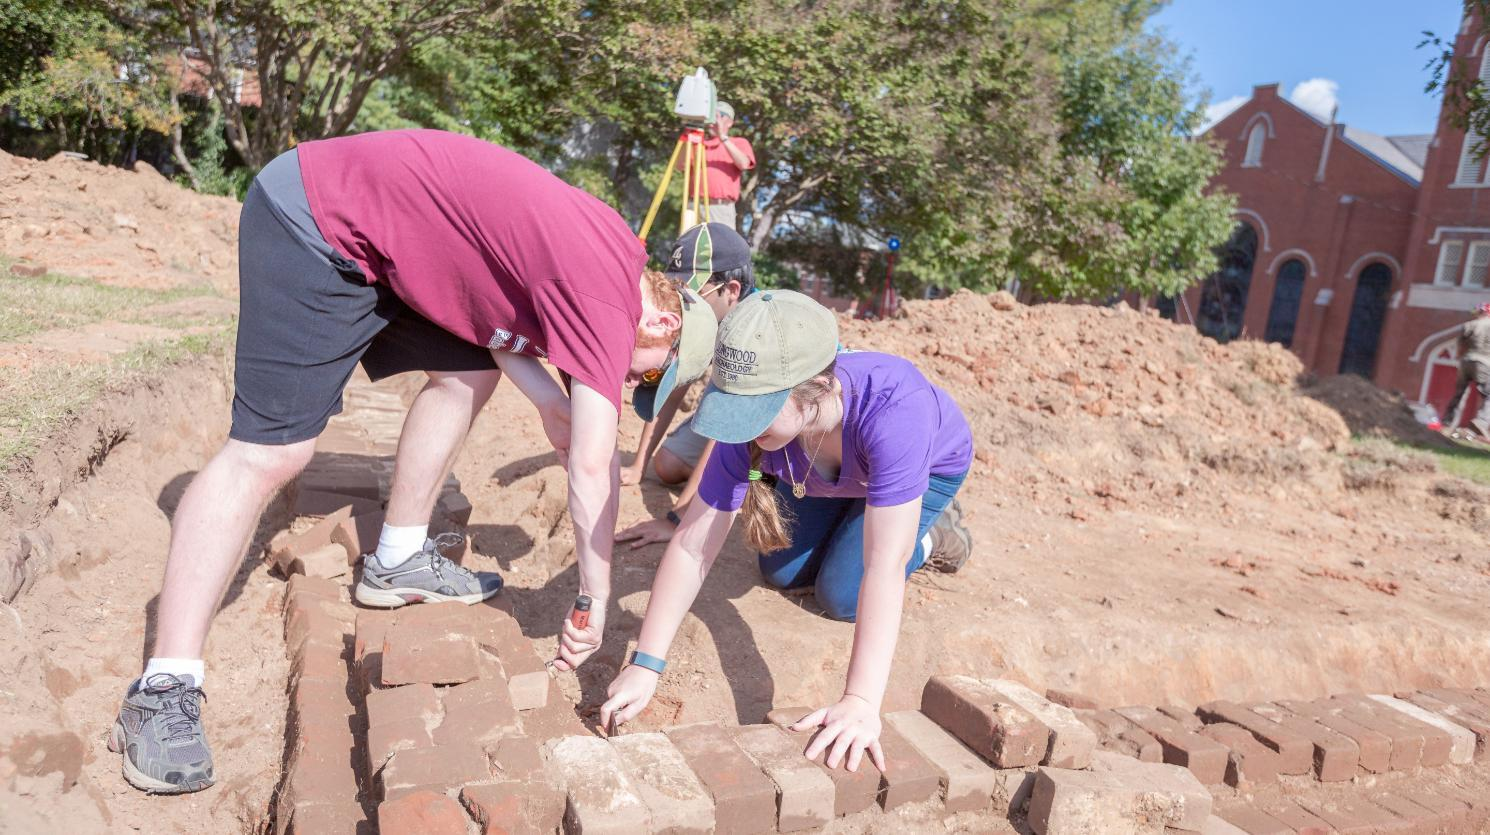 In a class-related archaeology survey, Ashton Chandler '18, an anthropology major from Leesburg, and Jessica Keaton '17, an anthropology major from Forest, uncover the foundation of the Richardson House in Bicentennial Park, which stood where the new admissions building will be built.